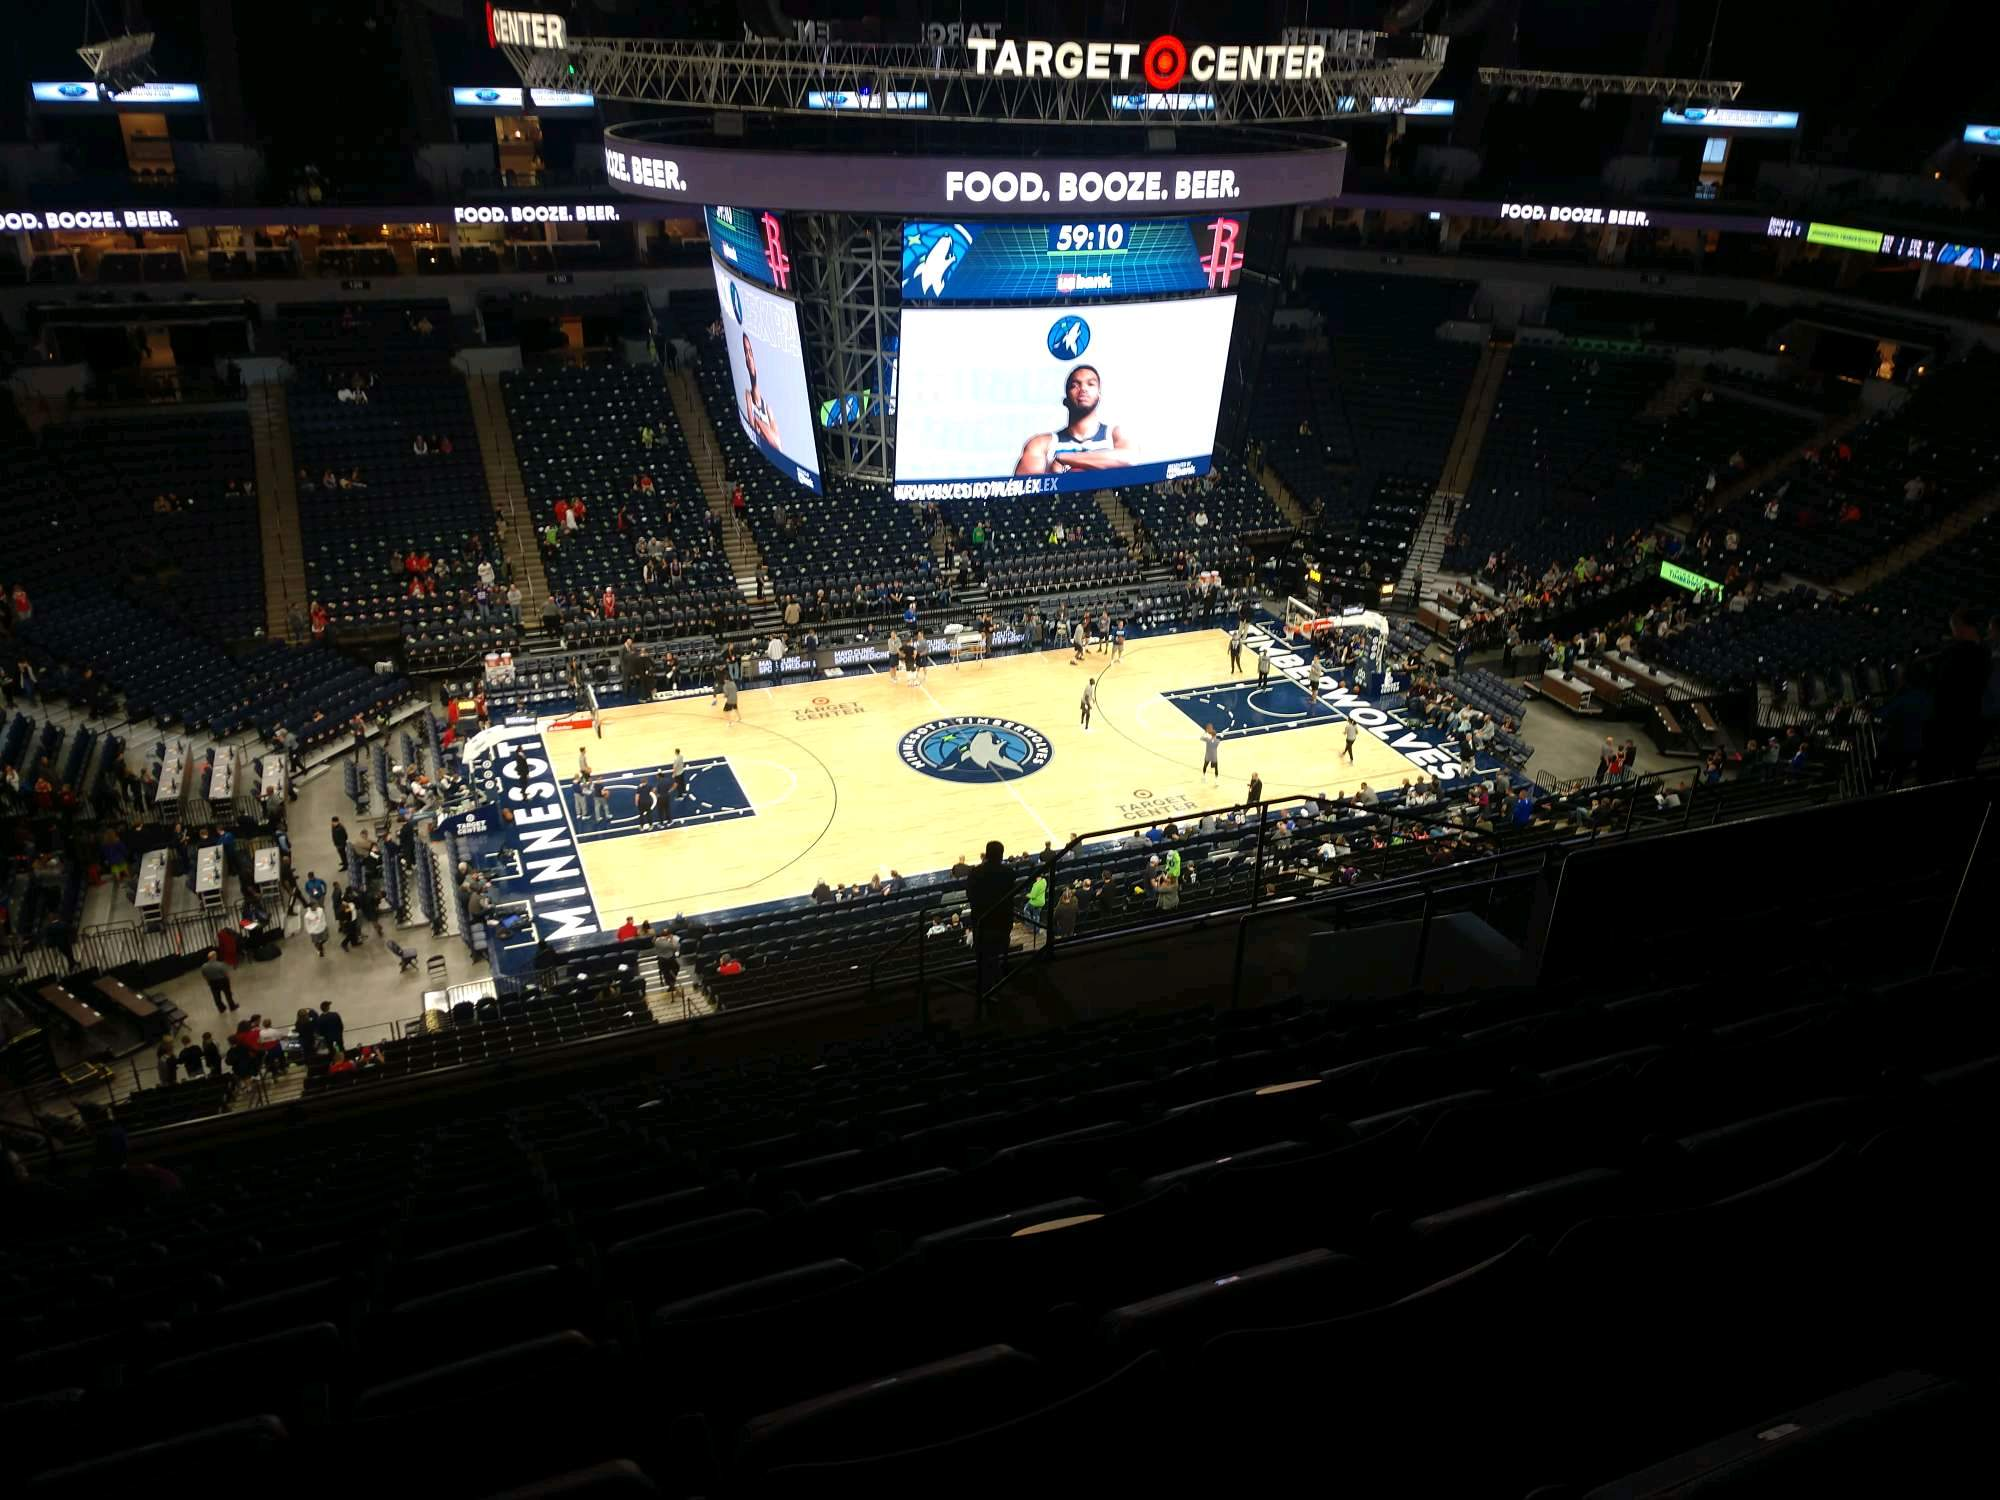 Target Center Section 213 Row Q Seat 8